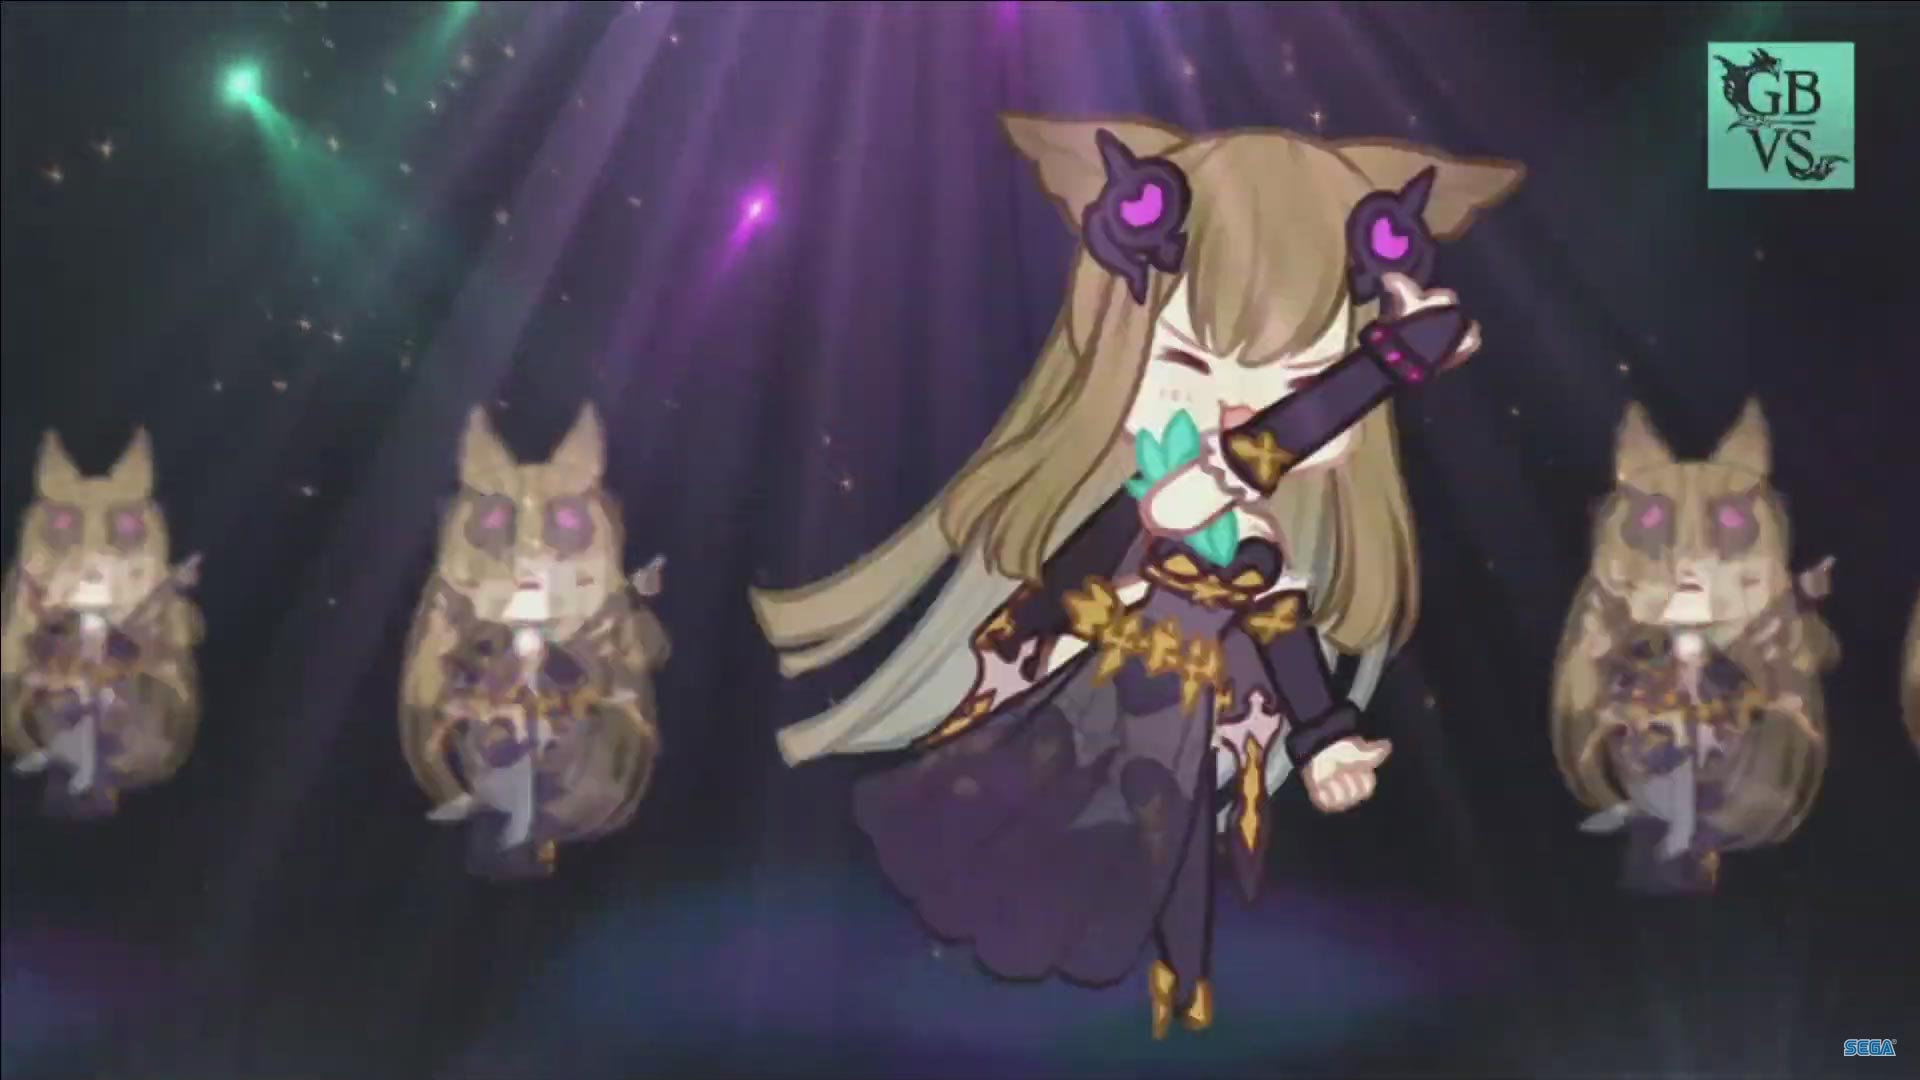 GranBlue Fantasy Versus Metera Reveal Images 5 out of 9 image gallery